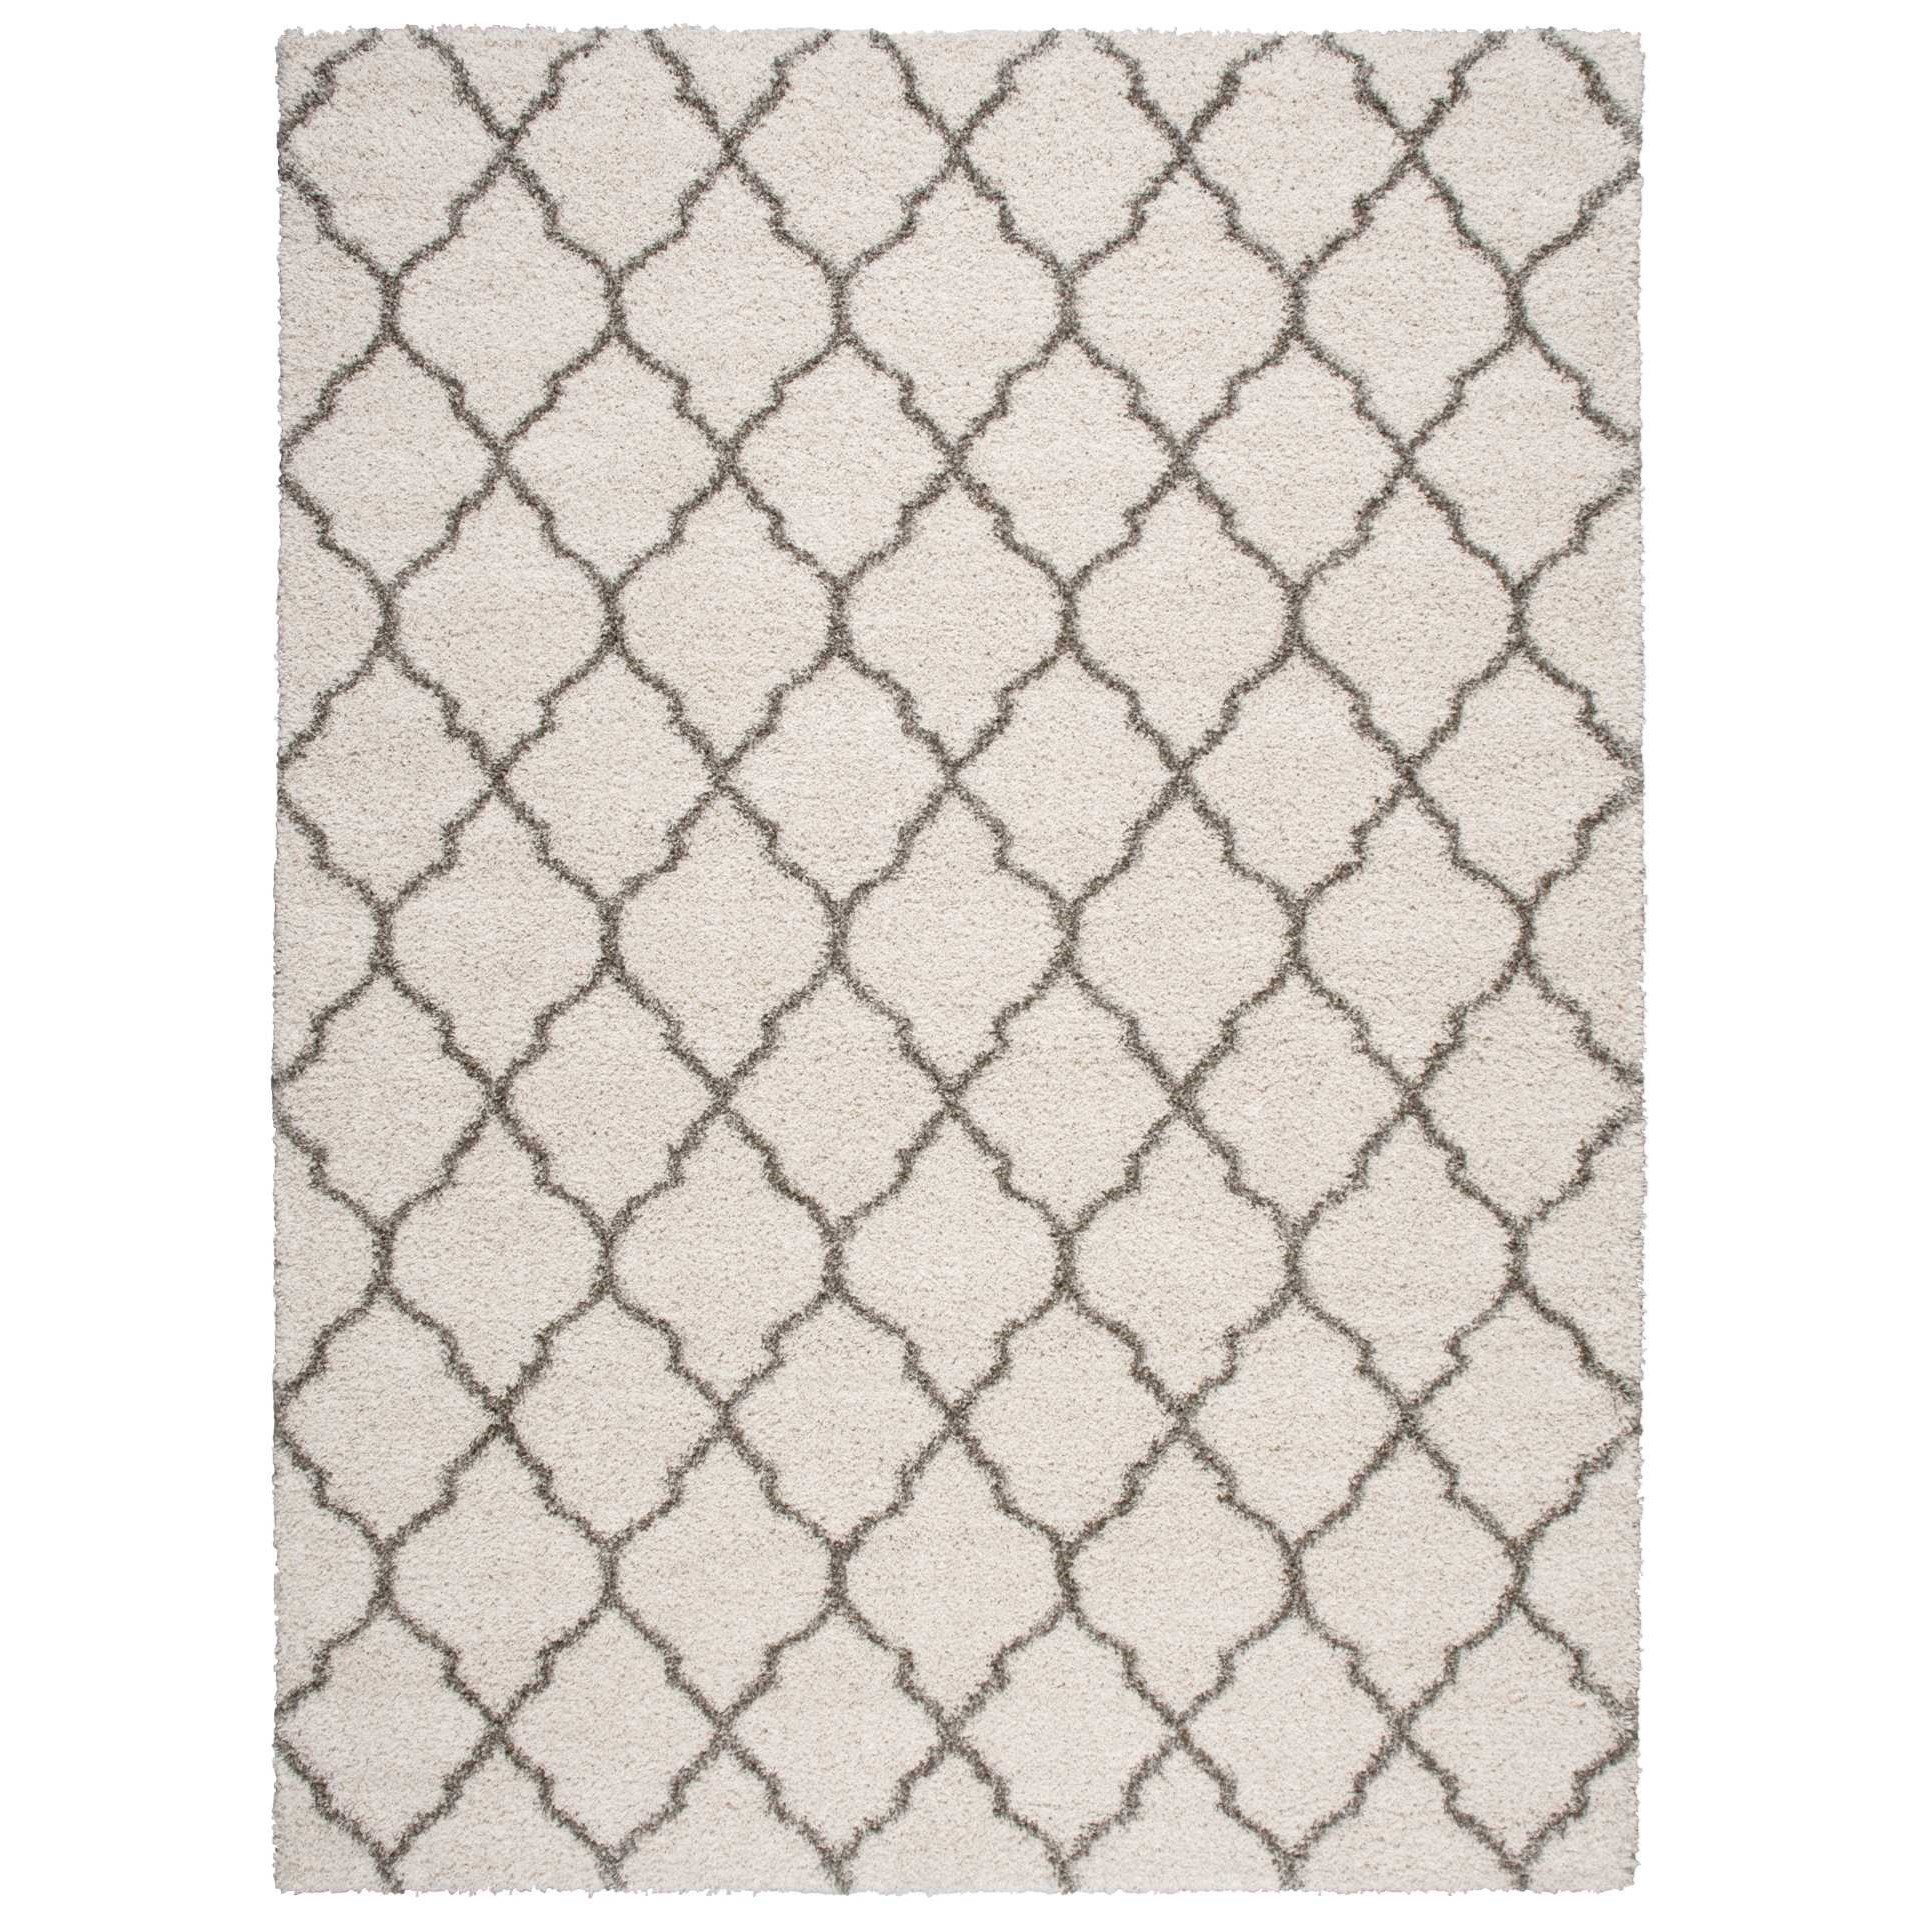 Amore Amore AMOR2 Beige 10'x13'   Rug by Nourison at Home Collections Furniture